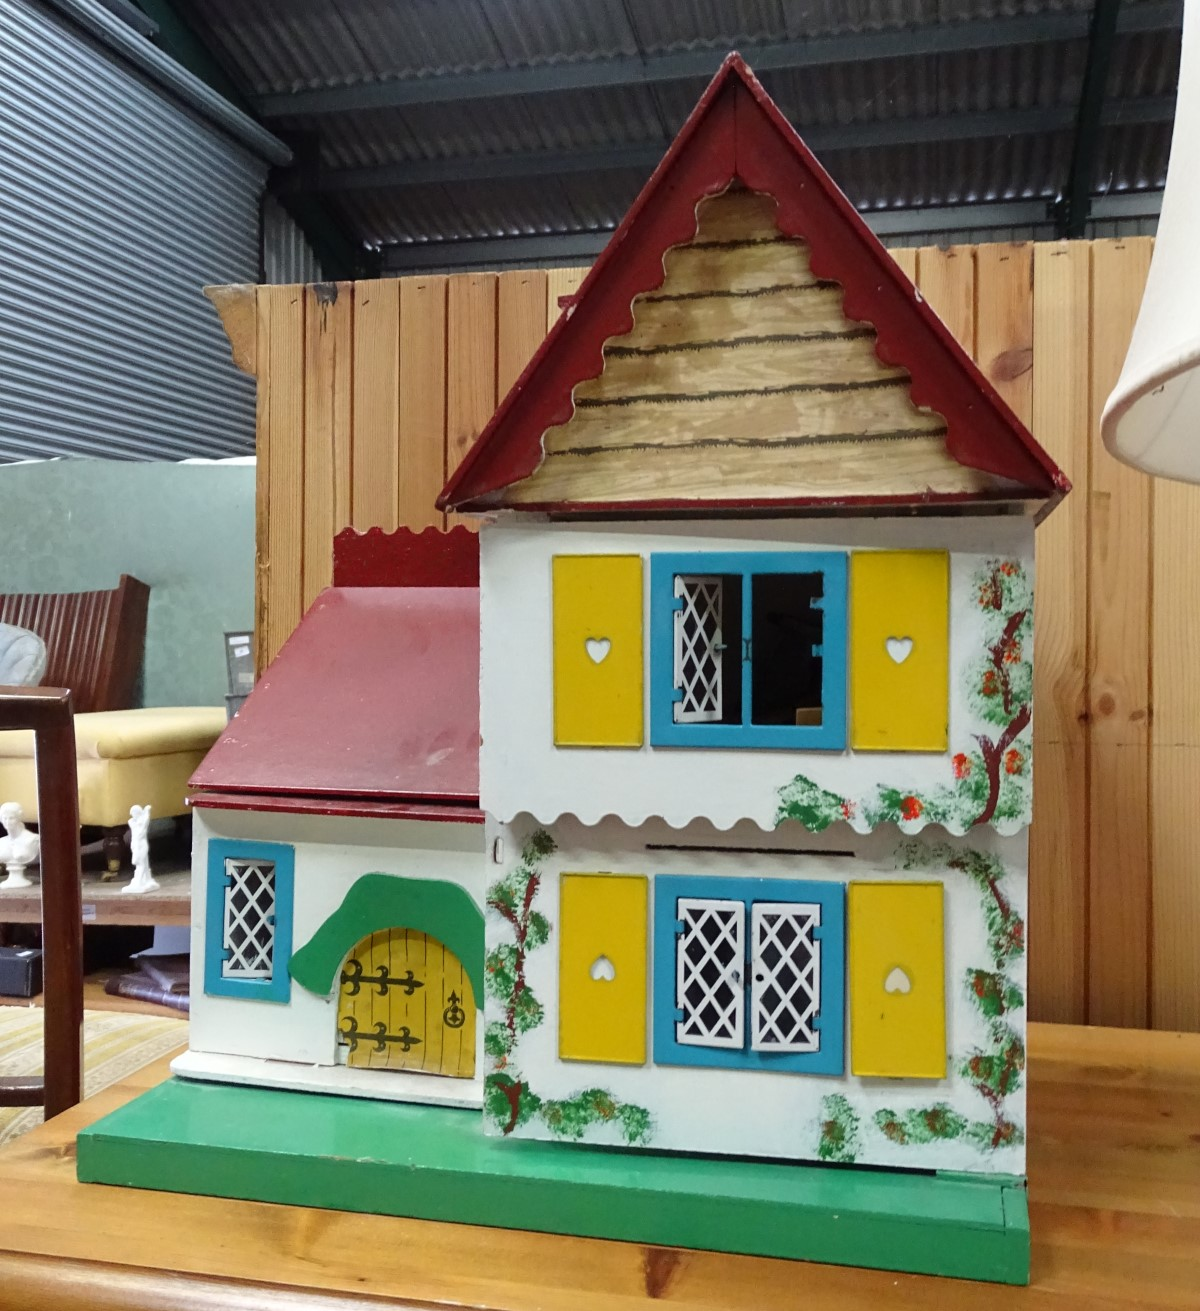 Lot 15 - Dolls house and furniture CONDITION: Please Note - we do not make reference to the